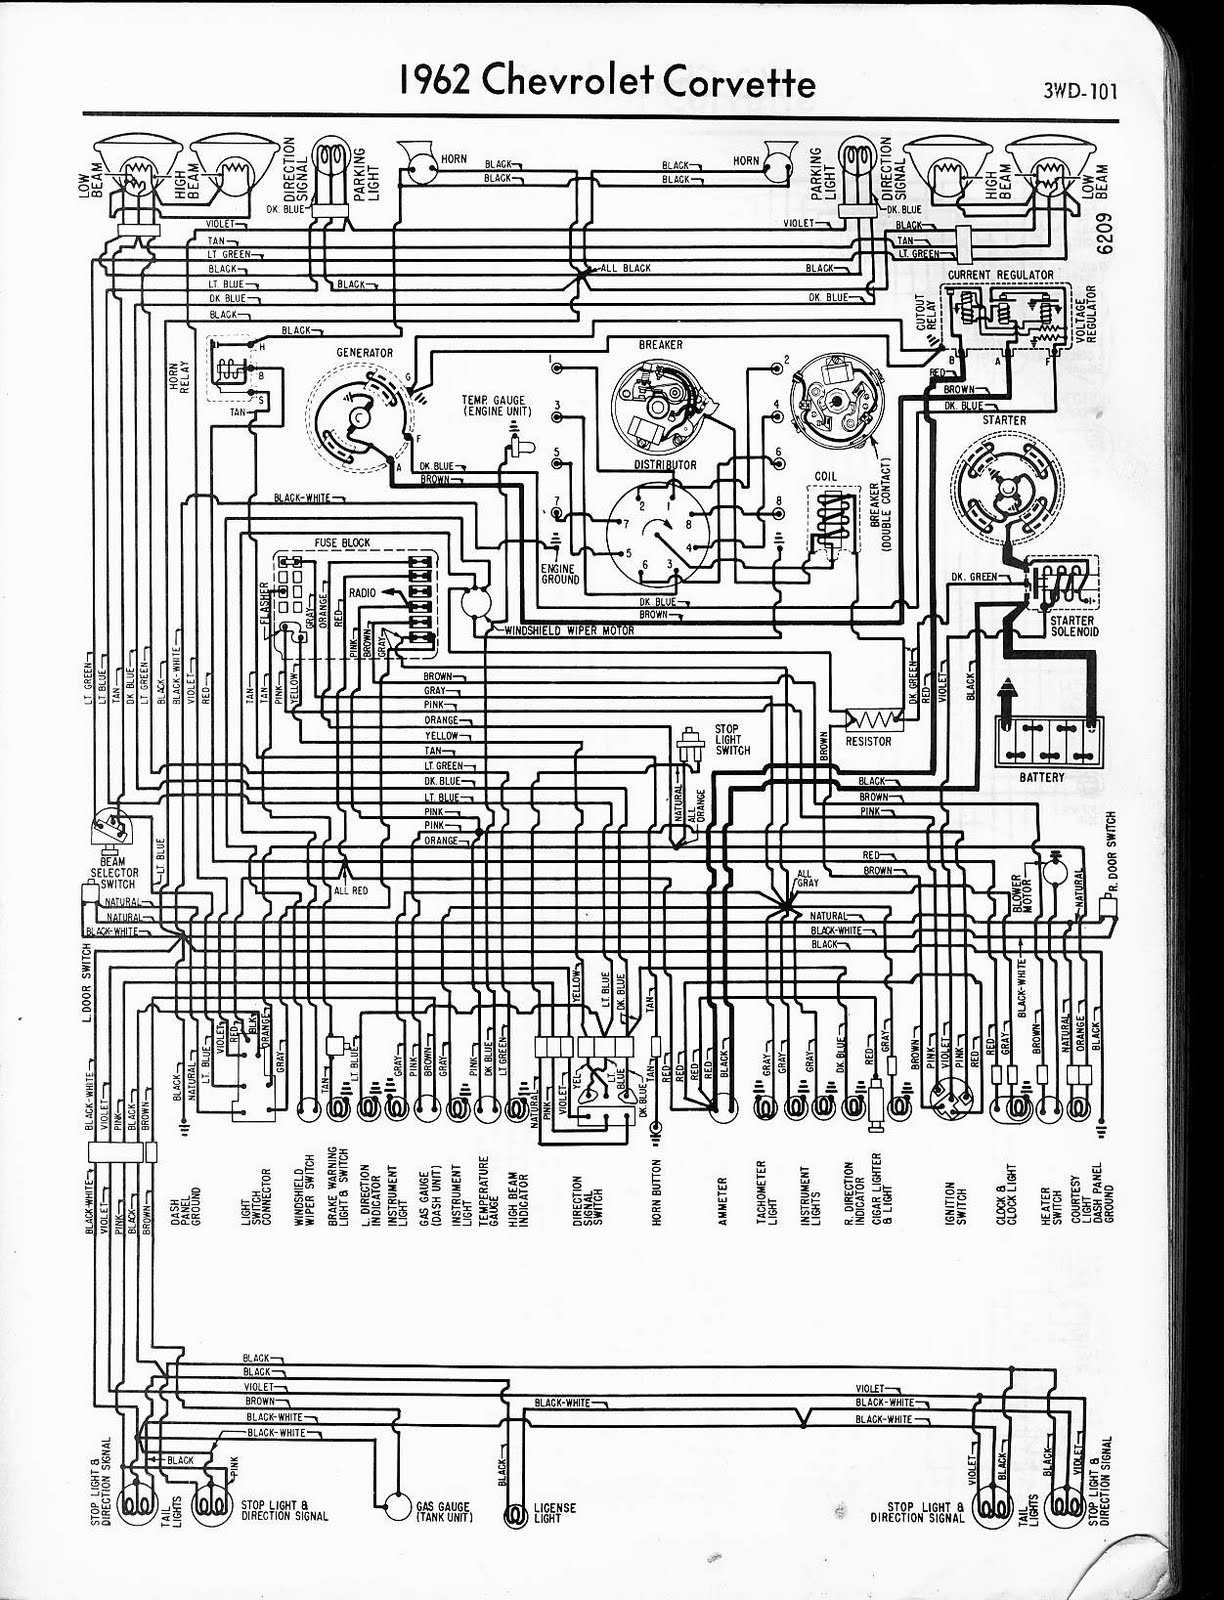 1962 ford wiring diagram simple wiring diagram1962 ford wiring diagram wiring library 1962 chevrolet wiring diagram 1962 ford wiring diagram